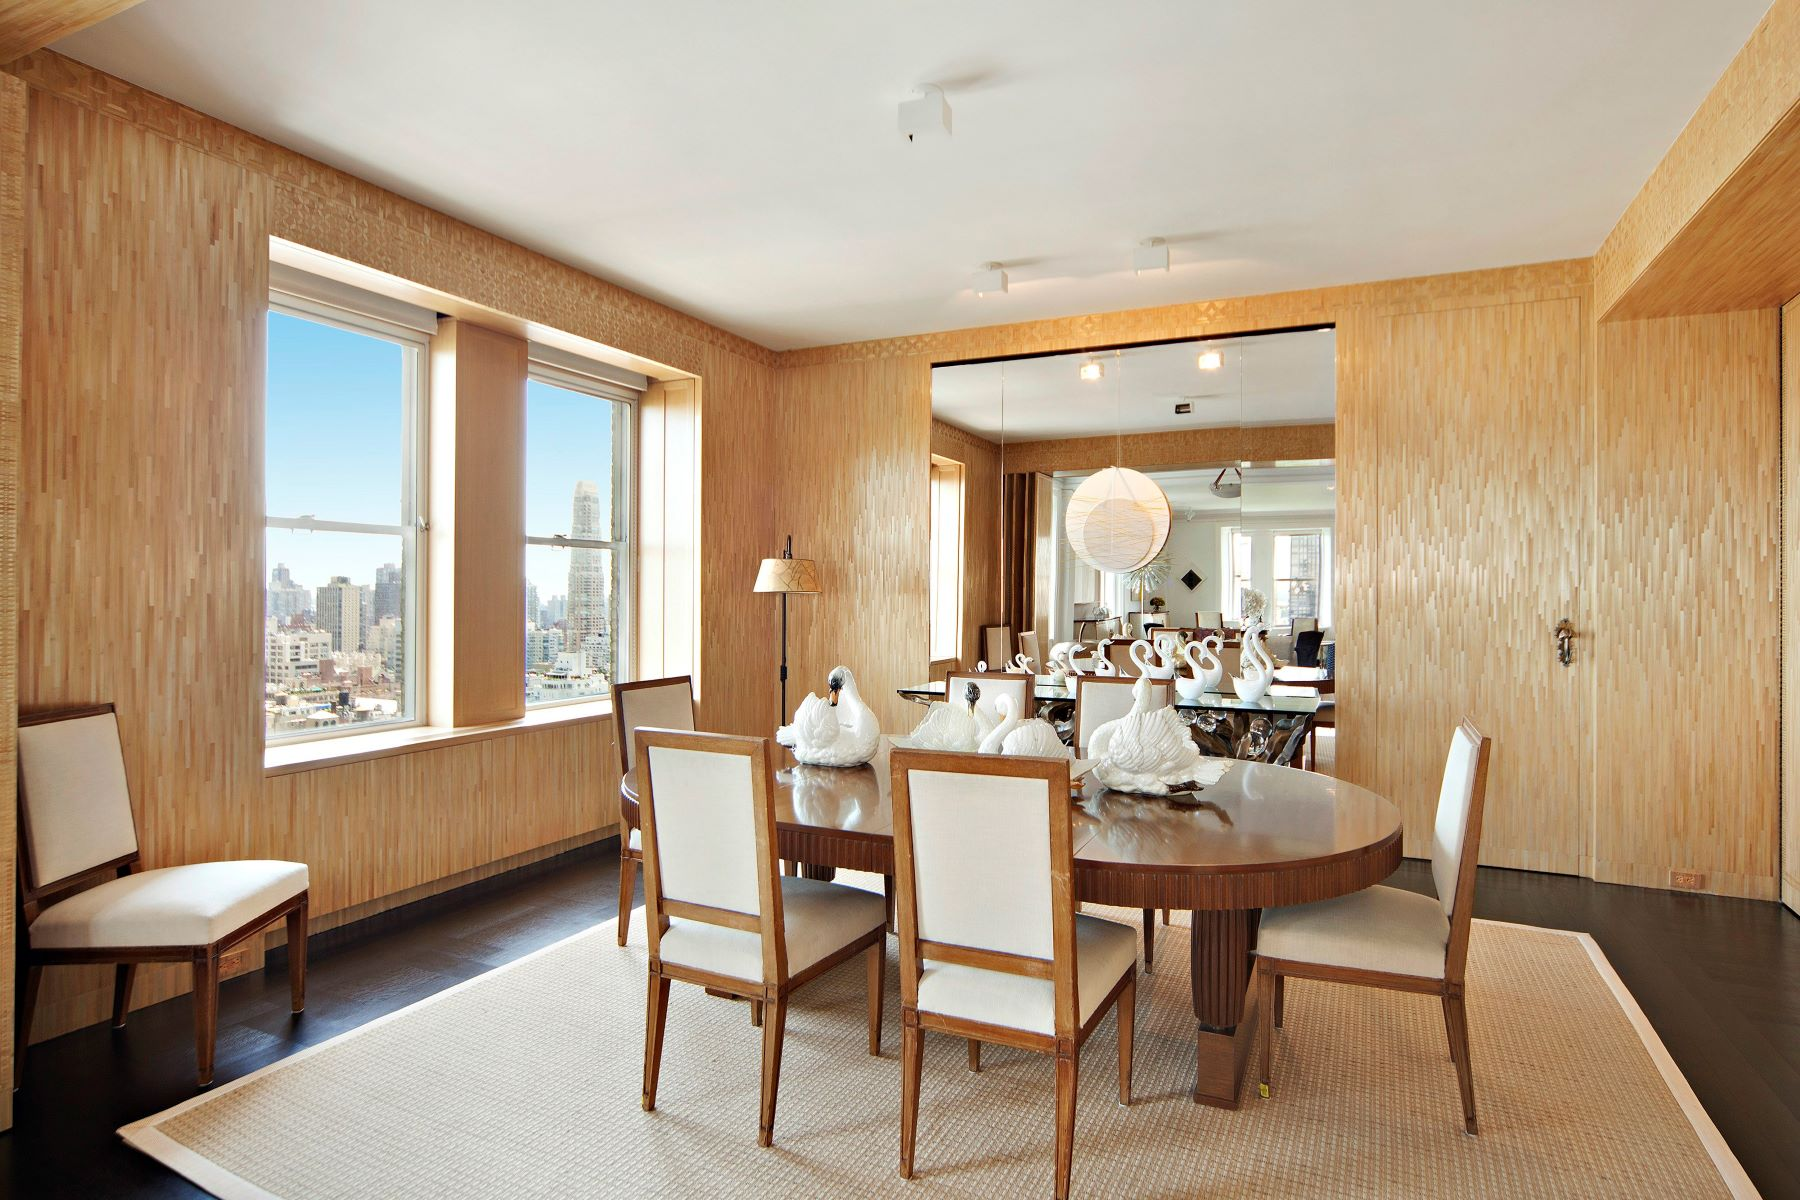 Additional photo for property listing at Pierre Hotel Perfection 795 Fifth Avenue Apt 30/31 New York, New York 10065 Vereinigte Staaten